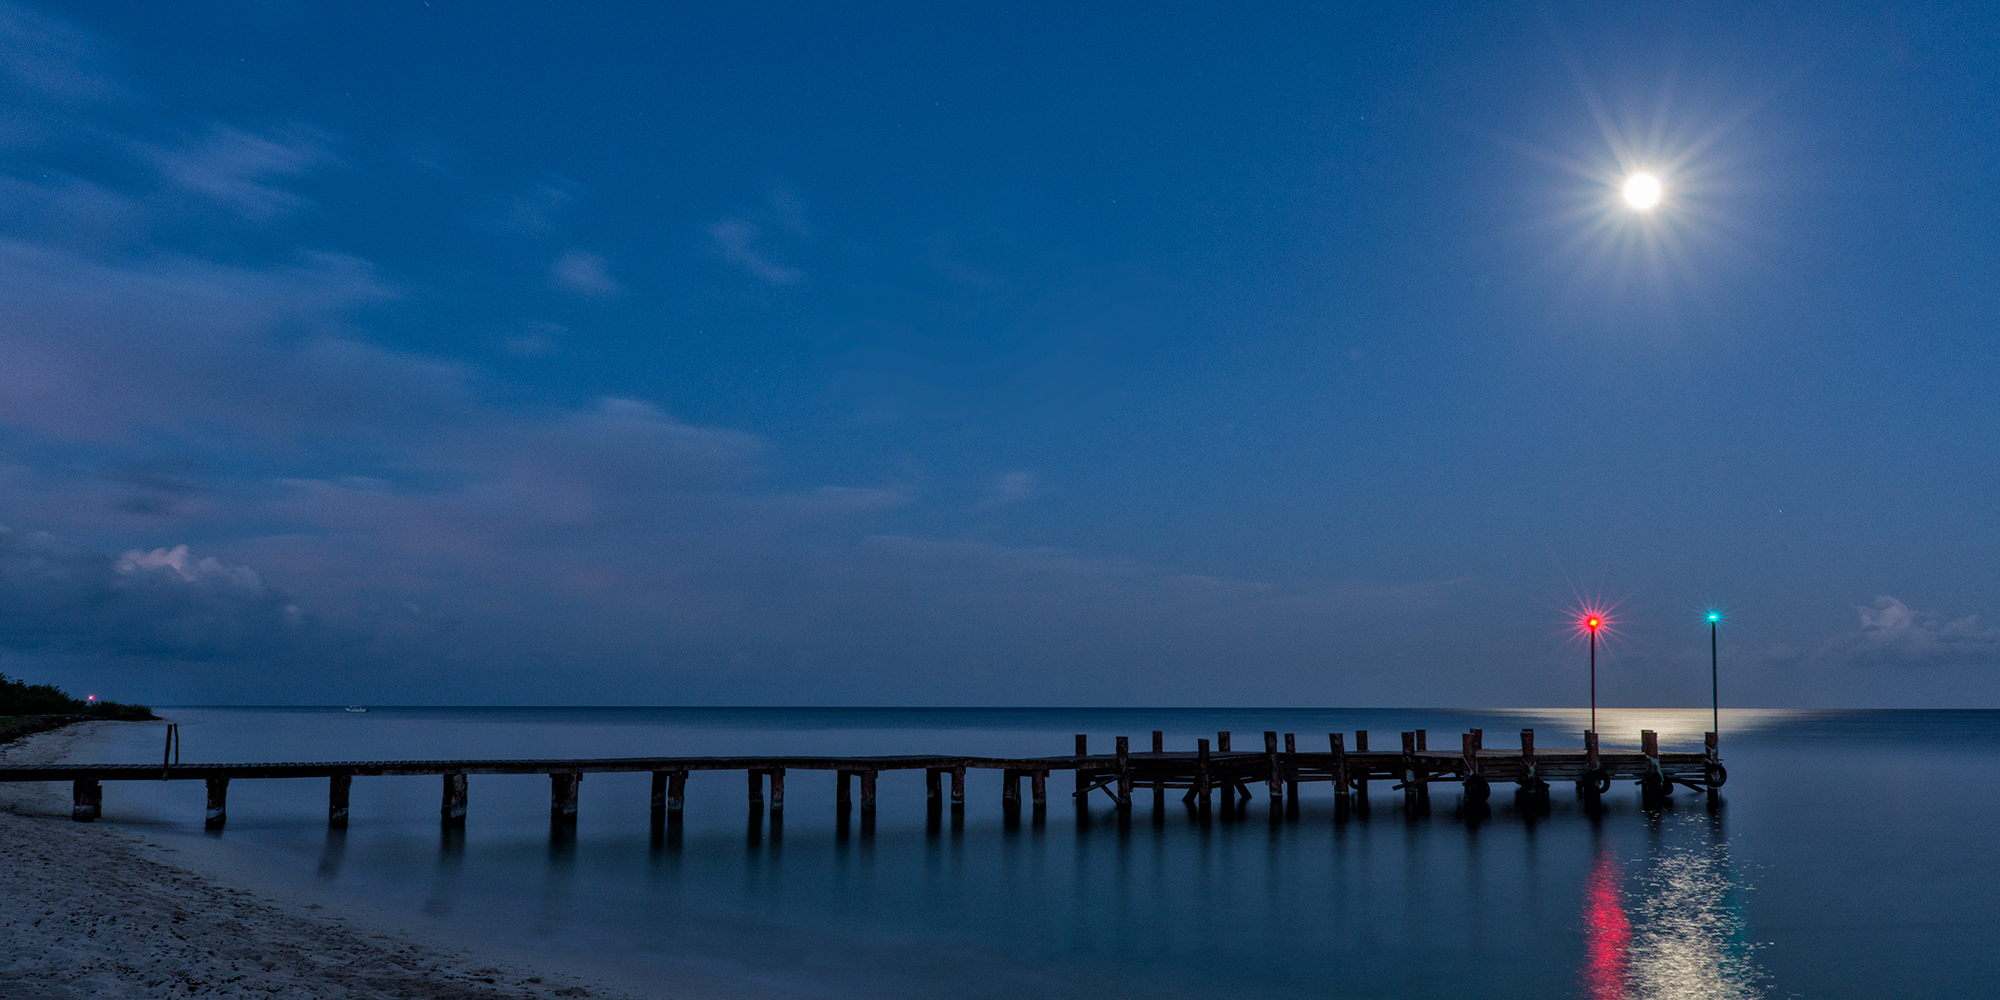 Moon Over the Pier. Cozumel, Mexico, 2017